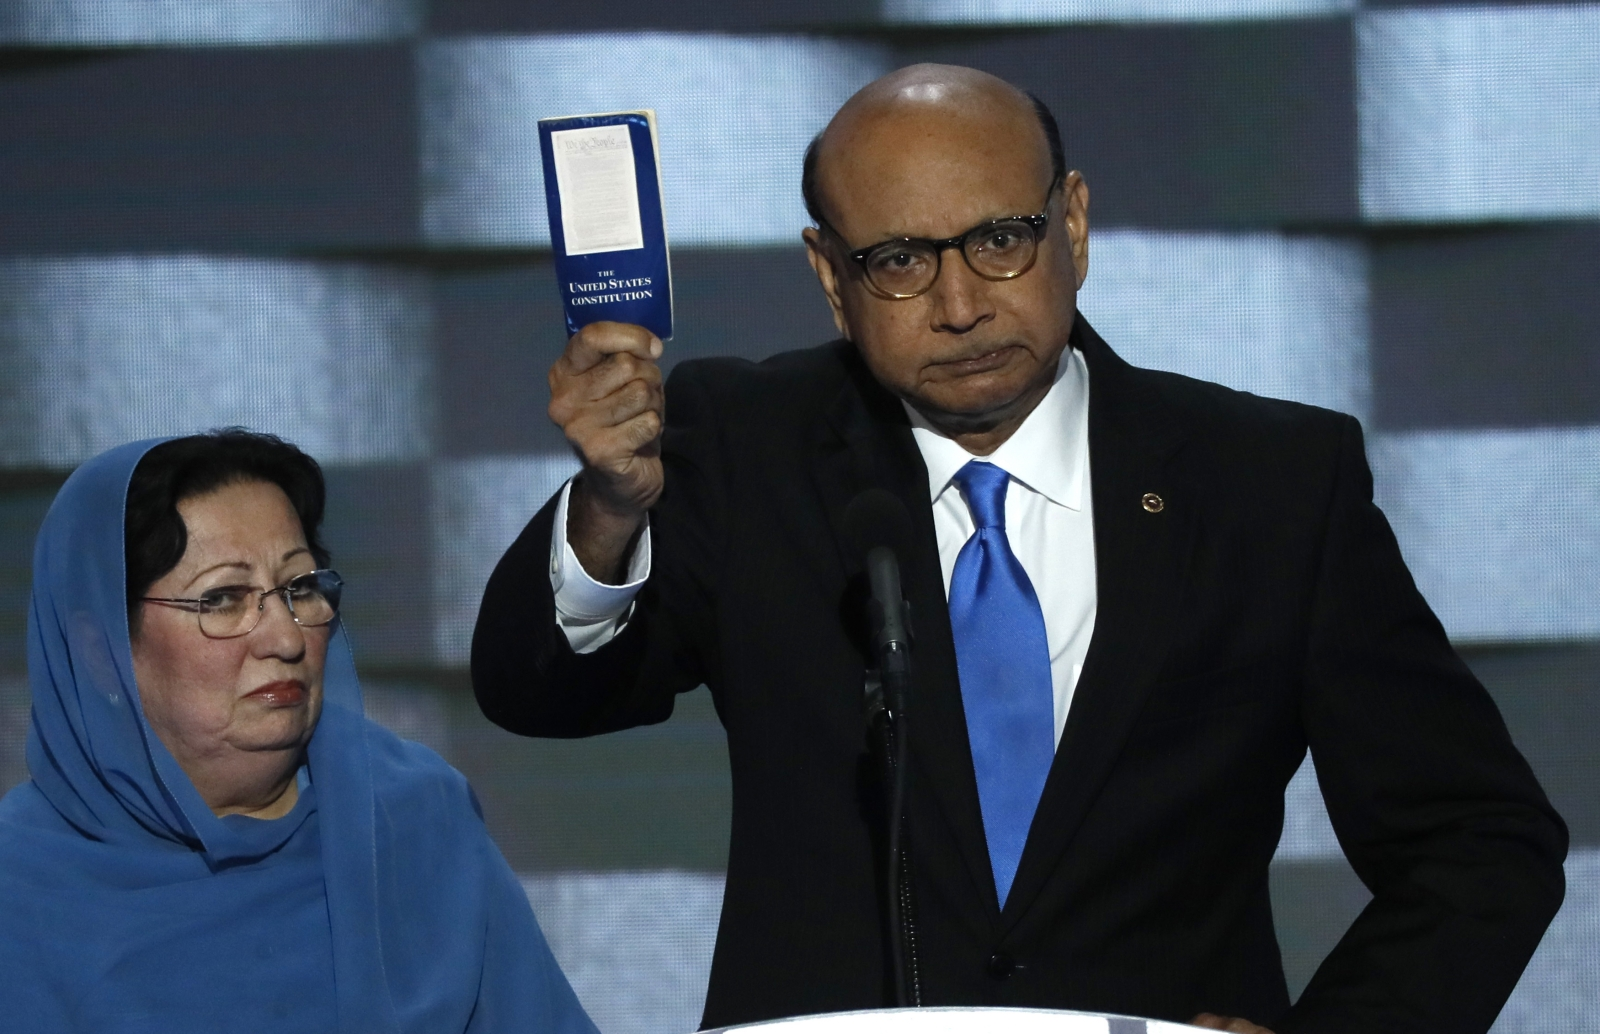 Khizr Khan at the DNC